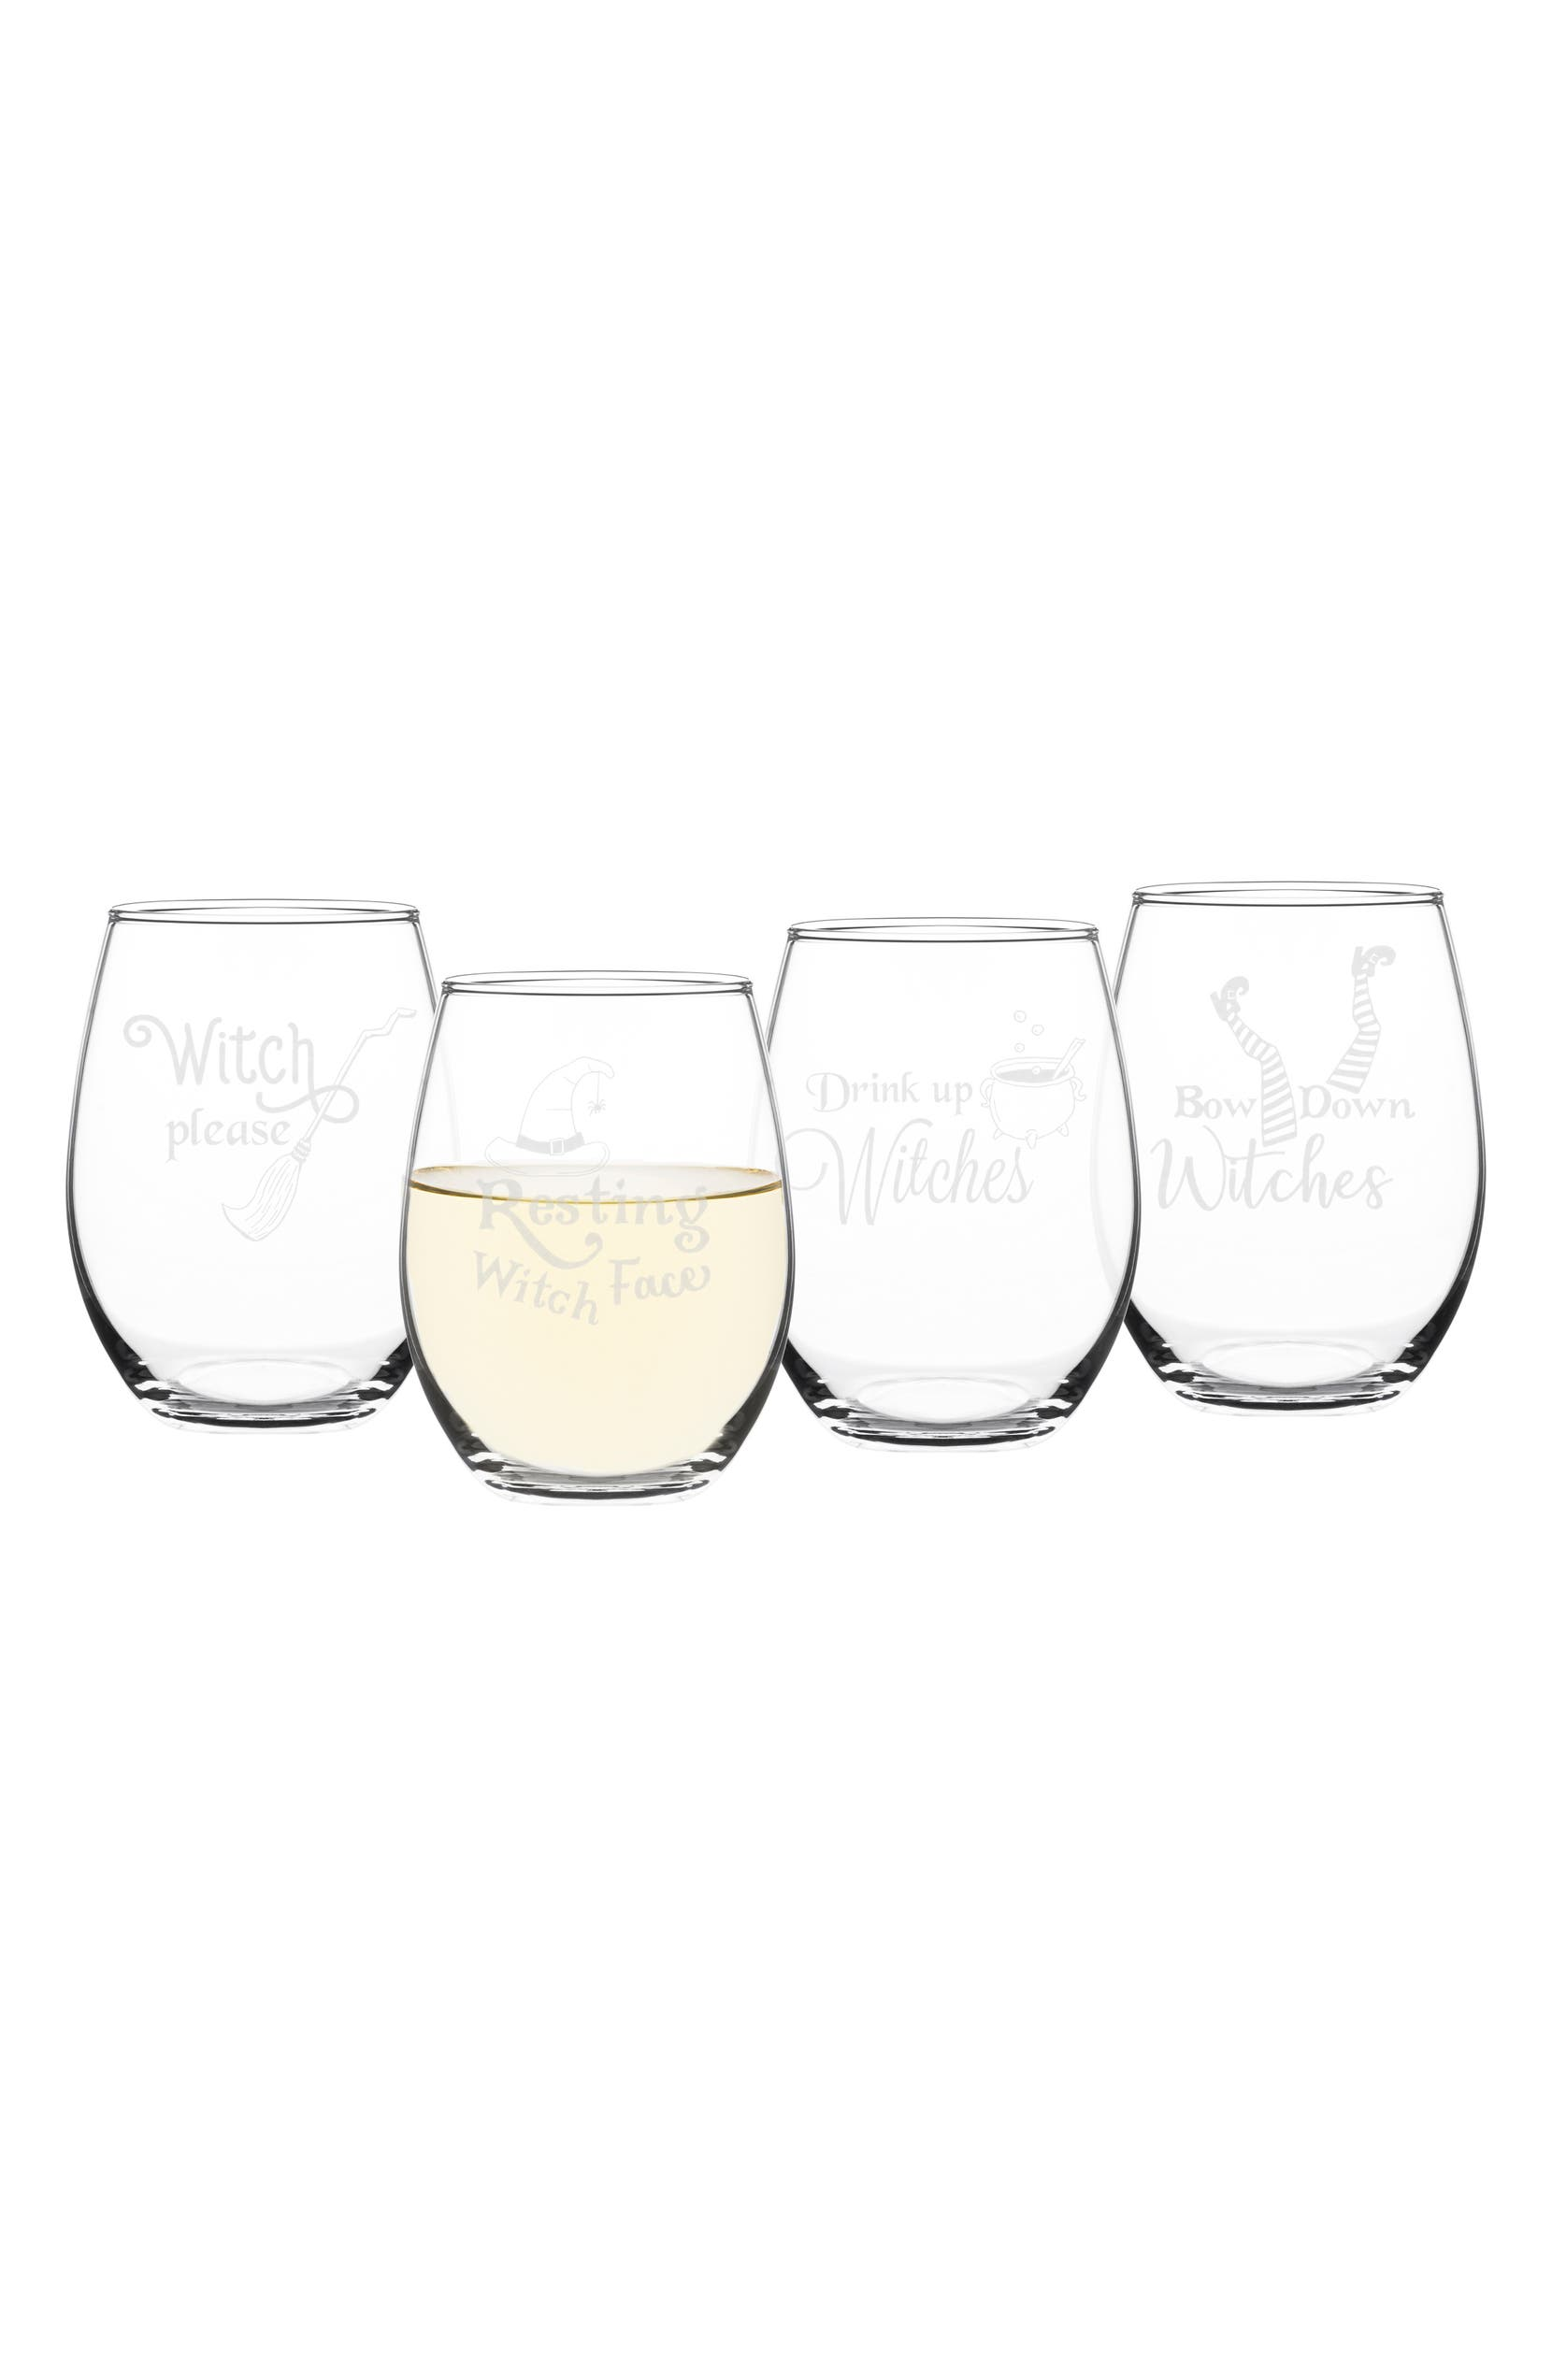 4242101238a Cathy's Concepts Witch Please Set of 4 Stemless Wine Glasses | Nordstrom